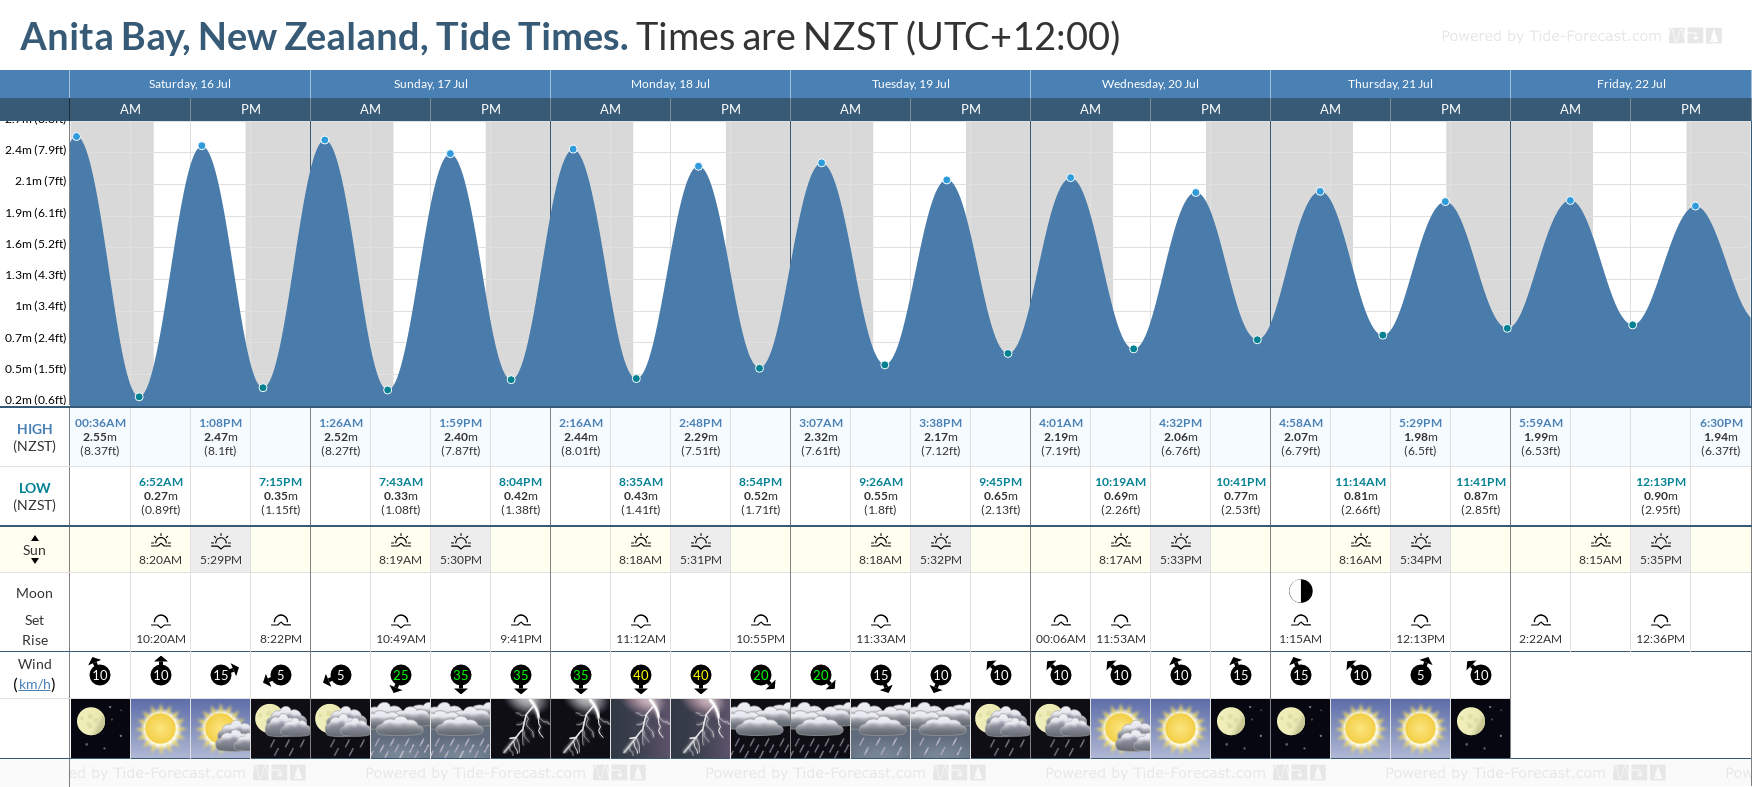 Anita Bay, New Zealand Tide Chart including high and low tide tide times for the next 7 days